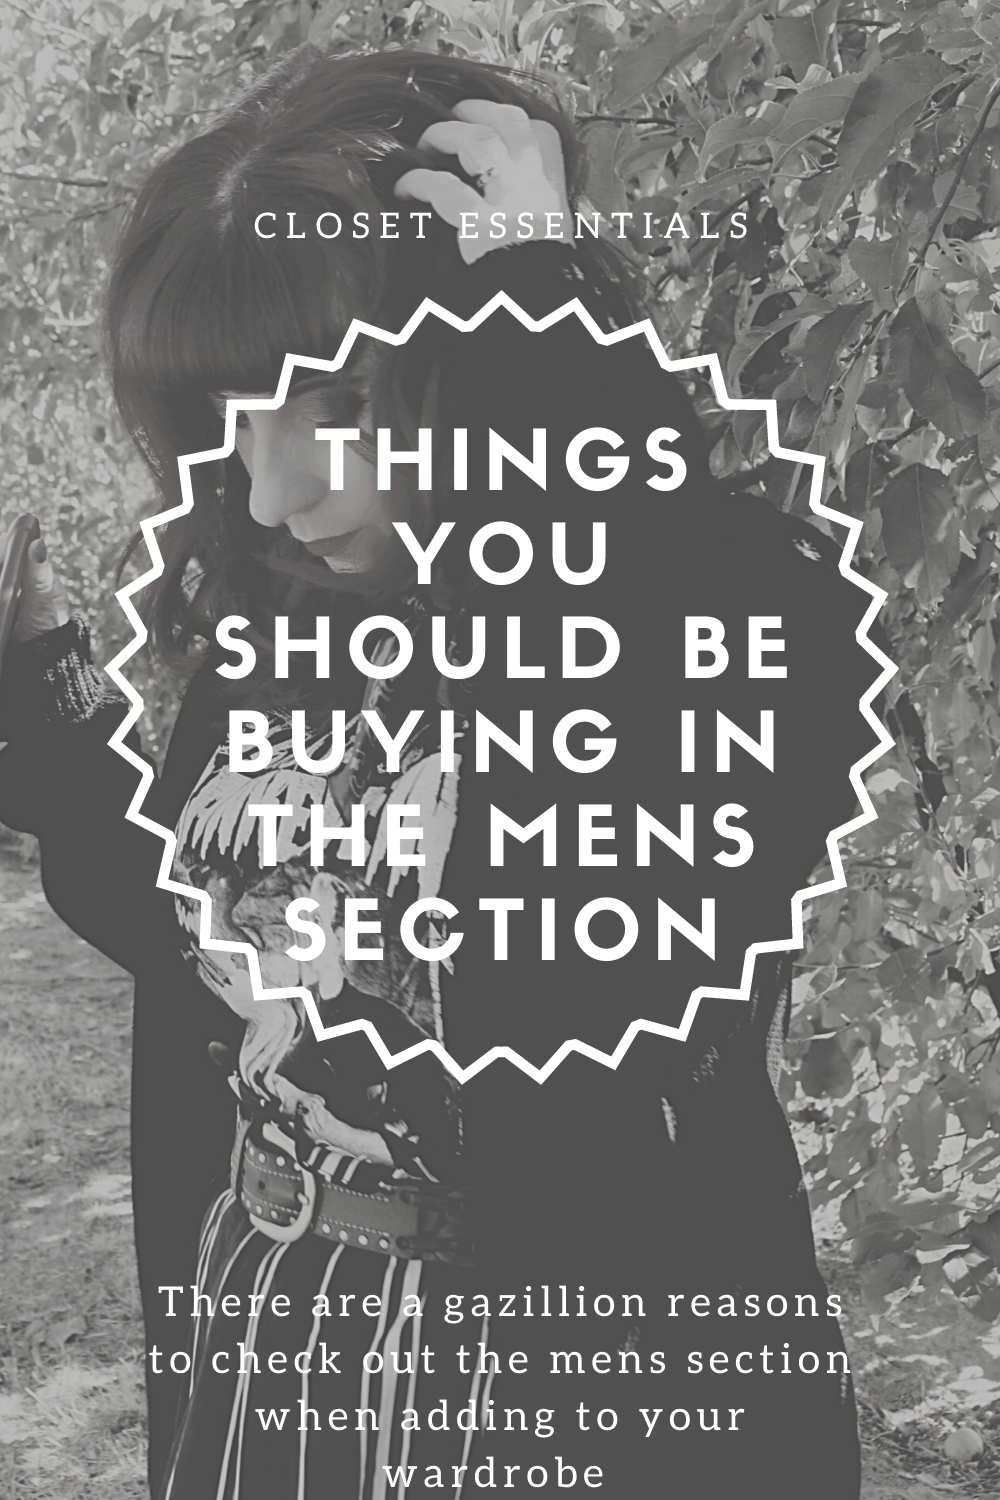 Things You Should Buy in the Mens Section